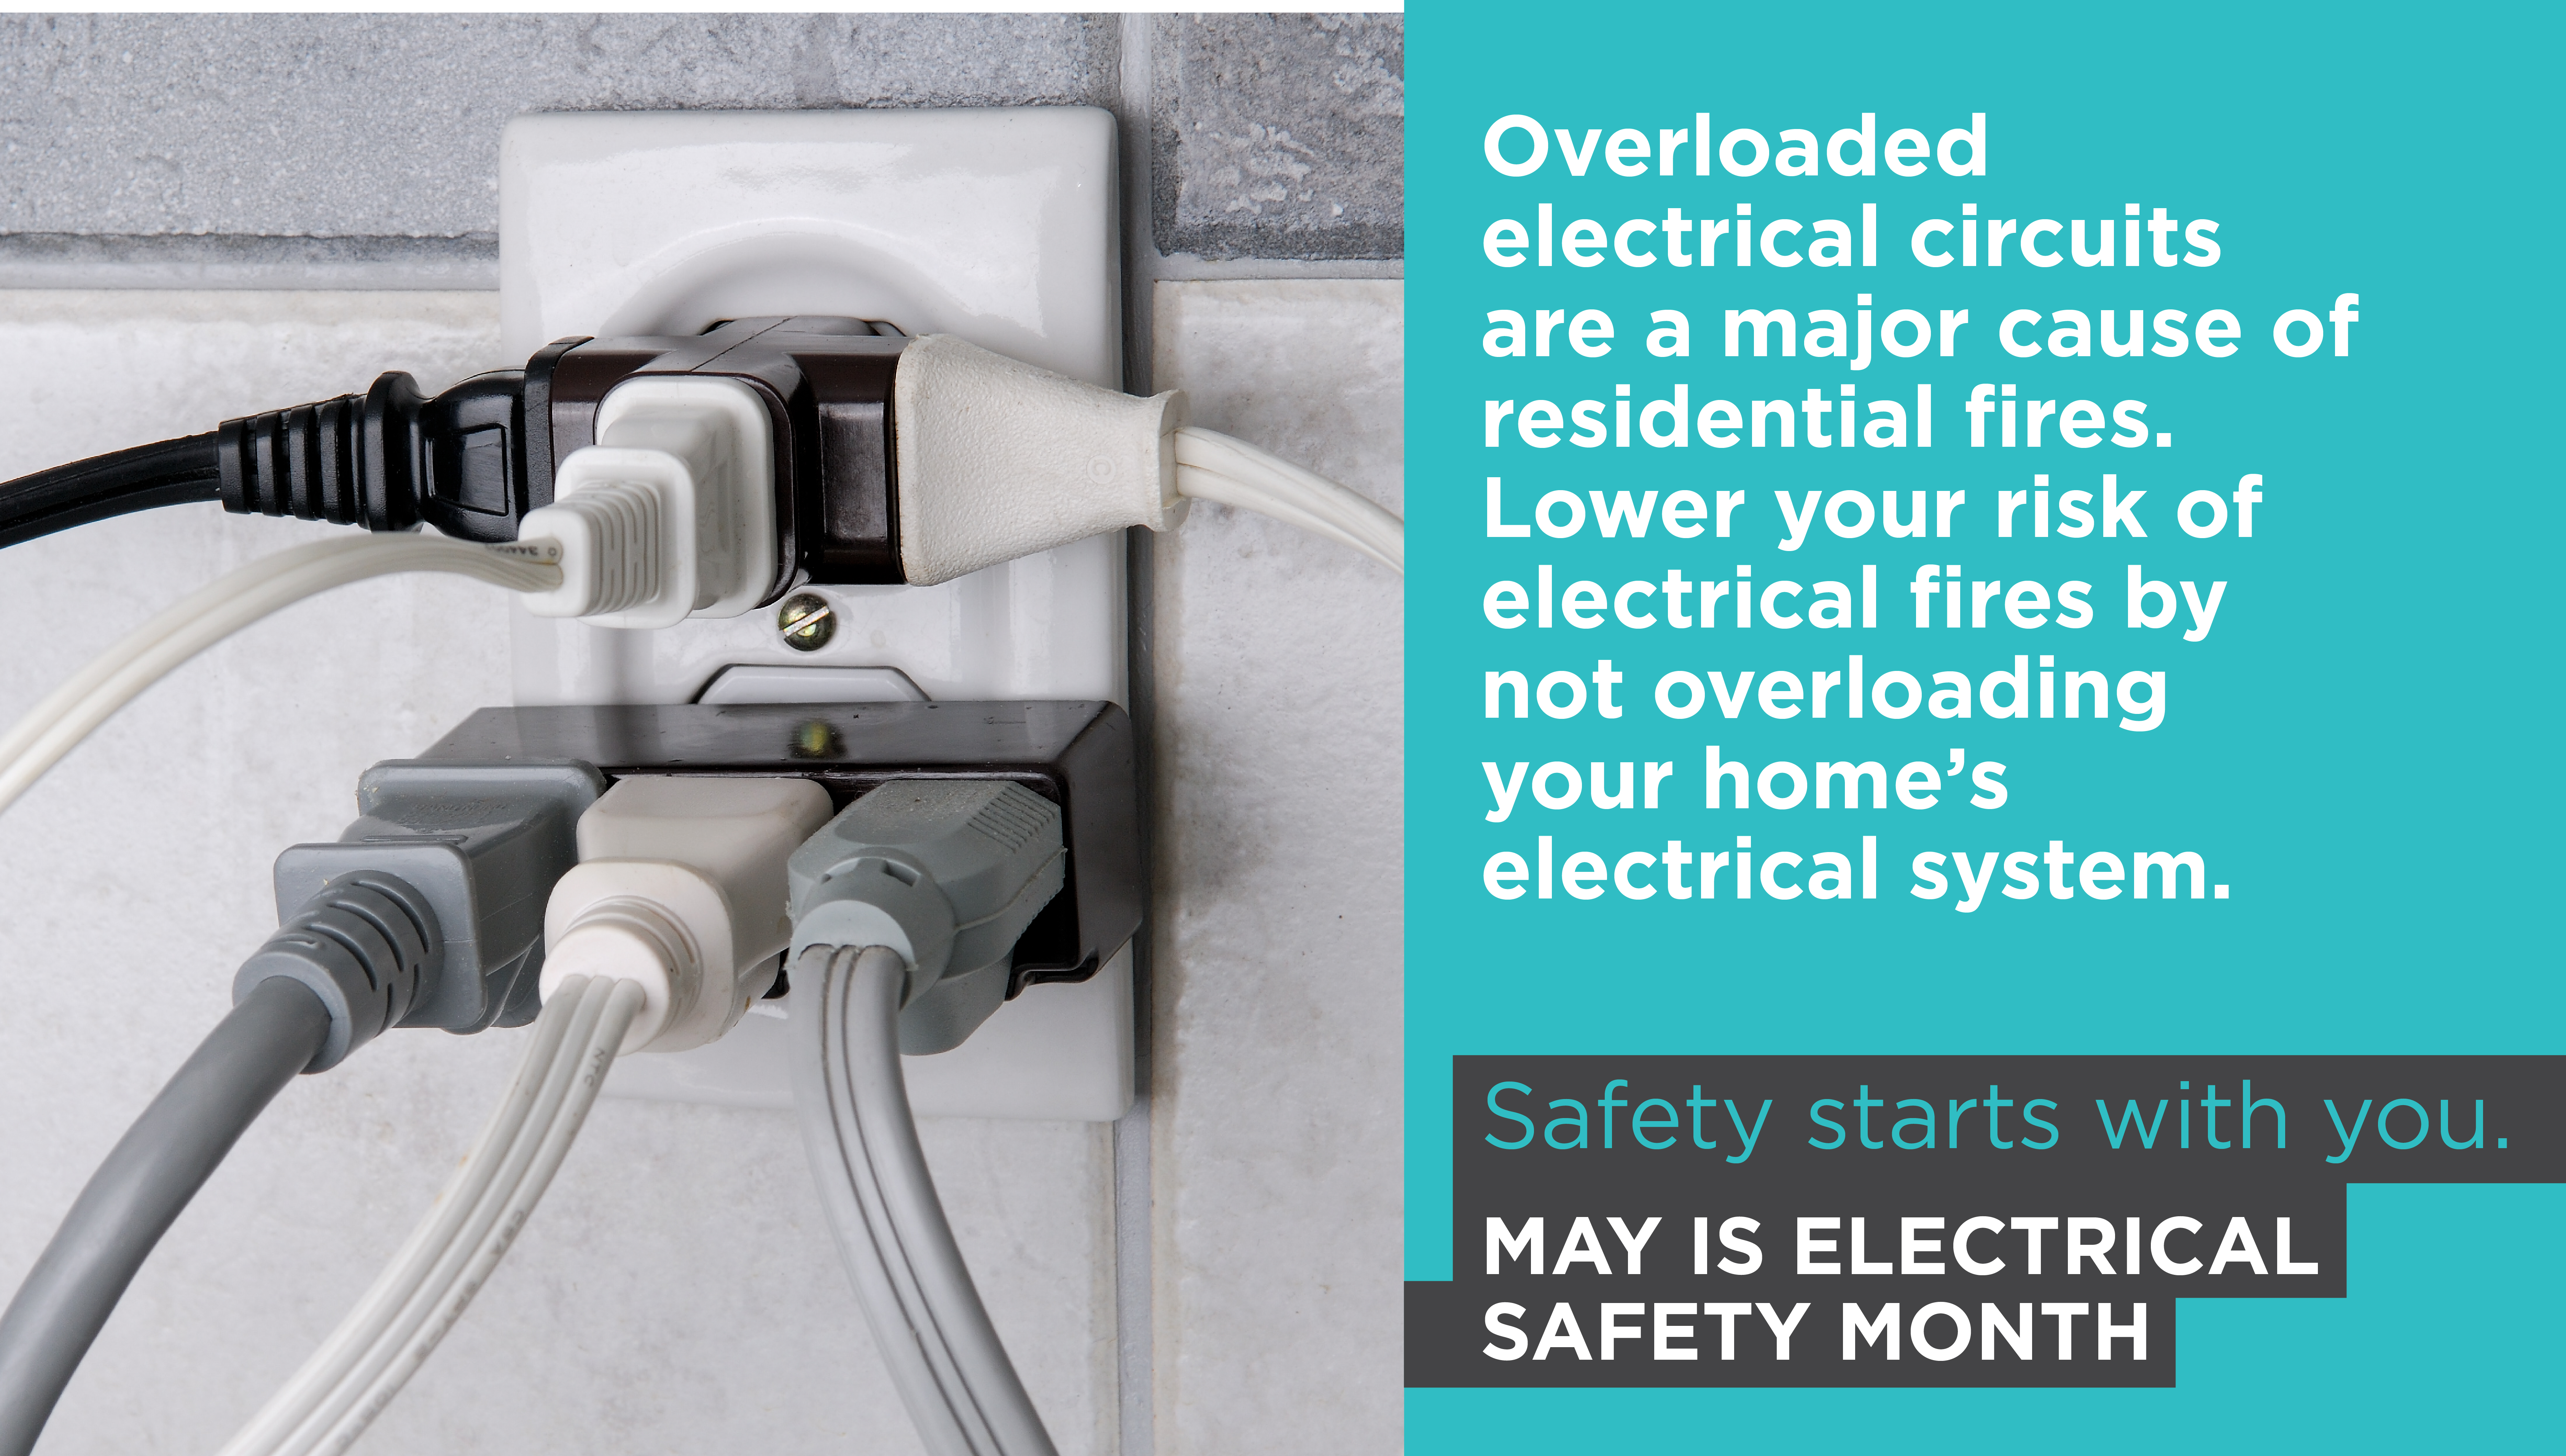 2019_05_DS_SOCIAL_ElectricalSafetyMonth_SocialMediaGraphic1.jpg